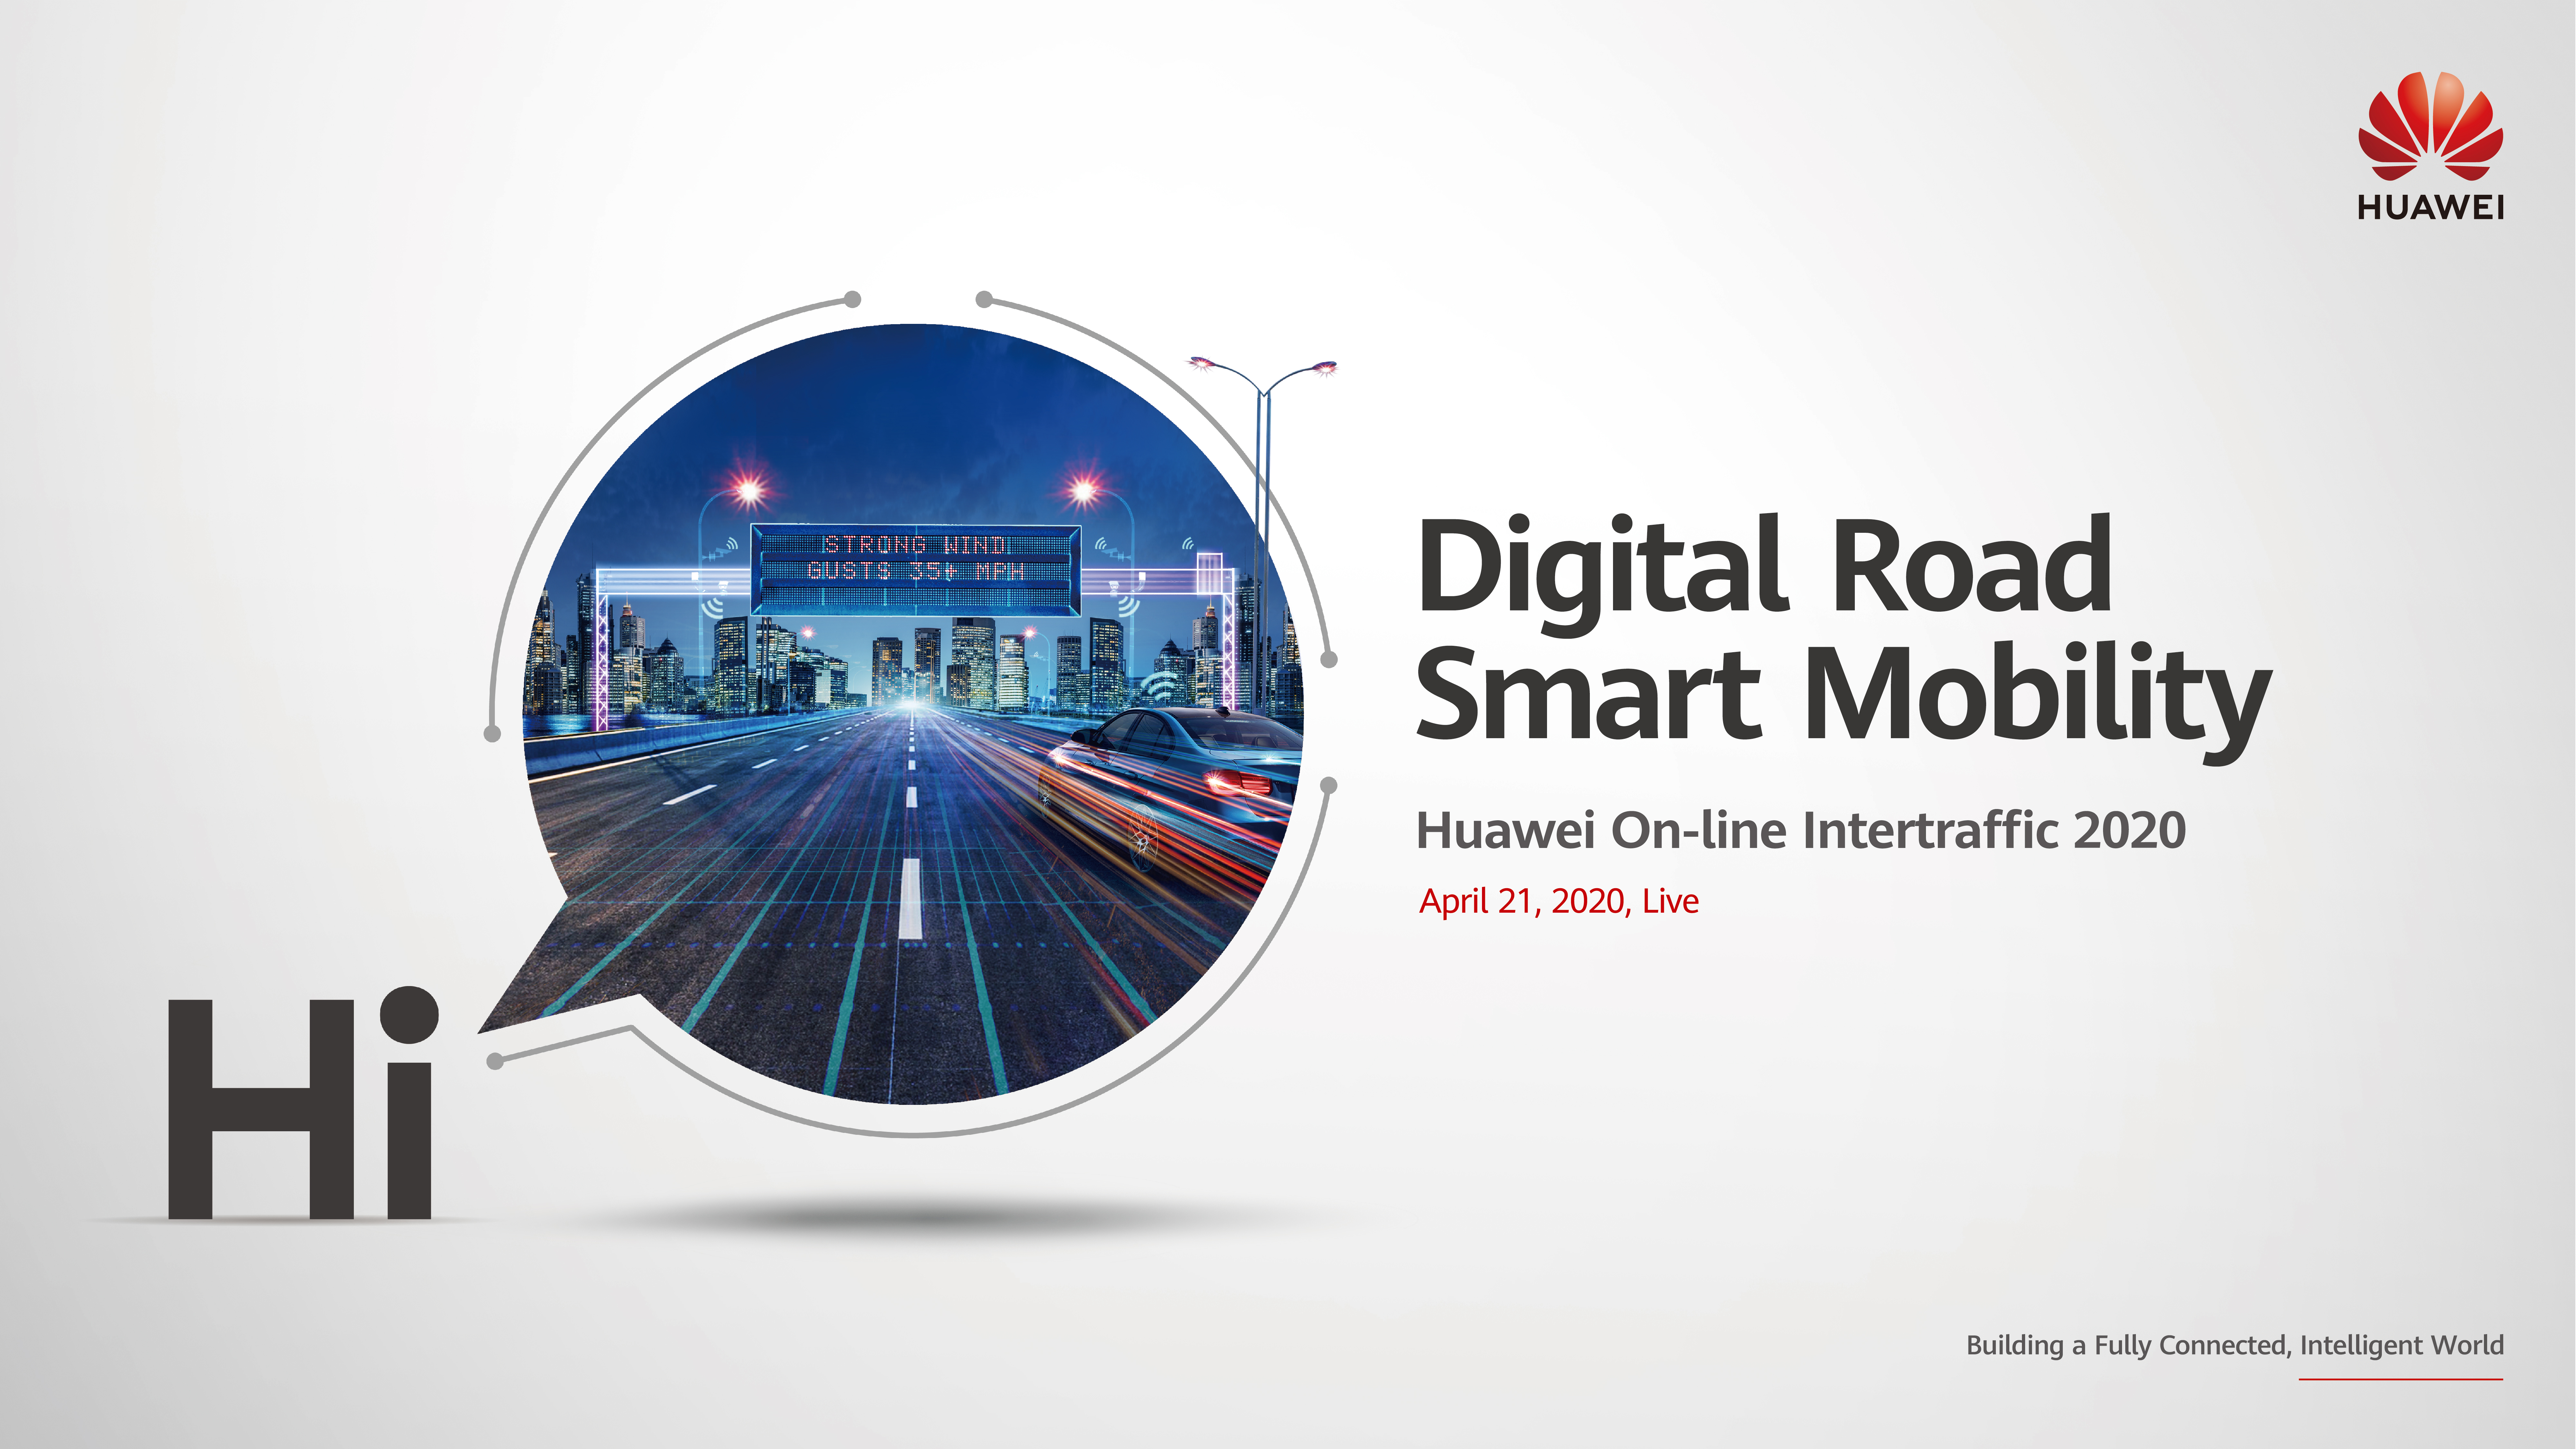 Huawei Online InterTraffic 2020